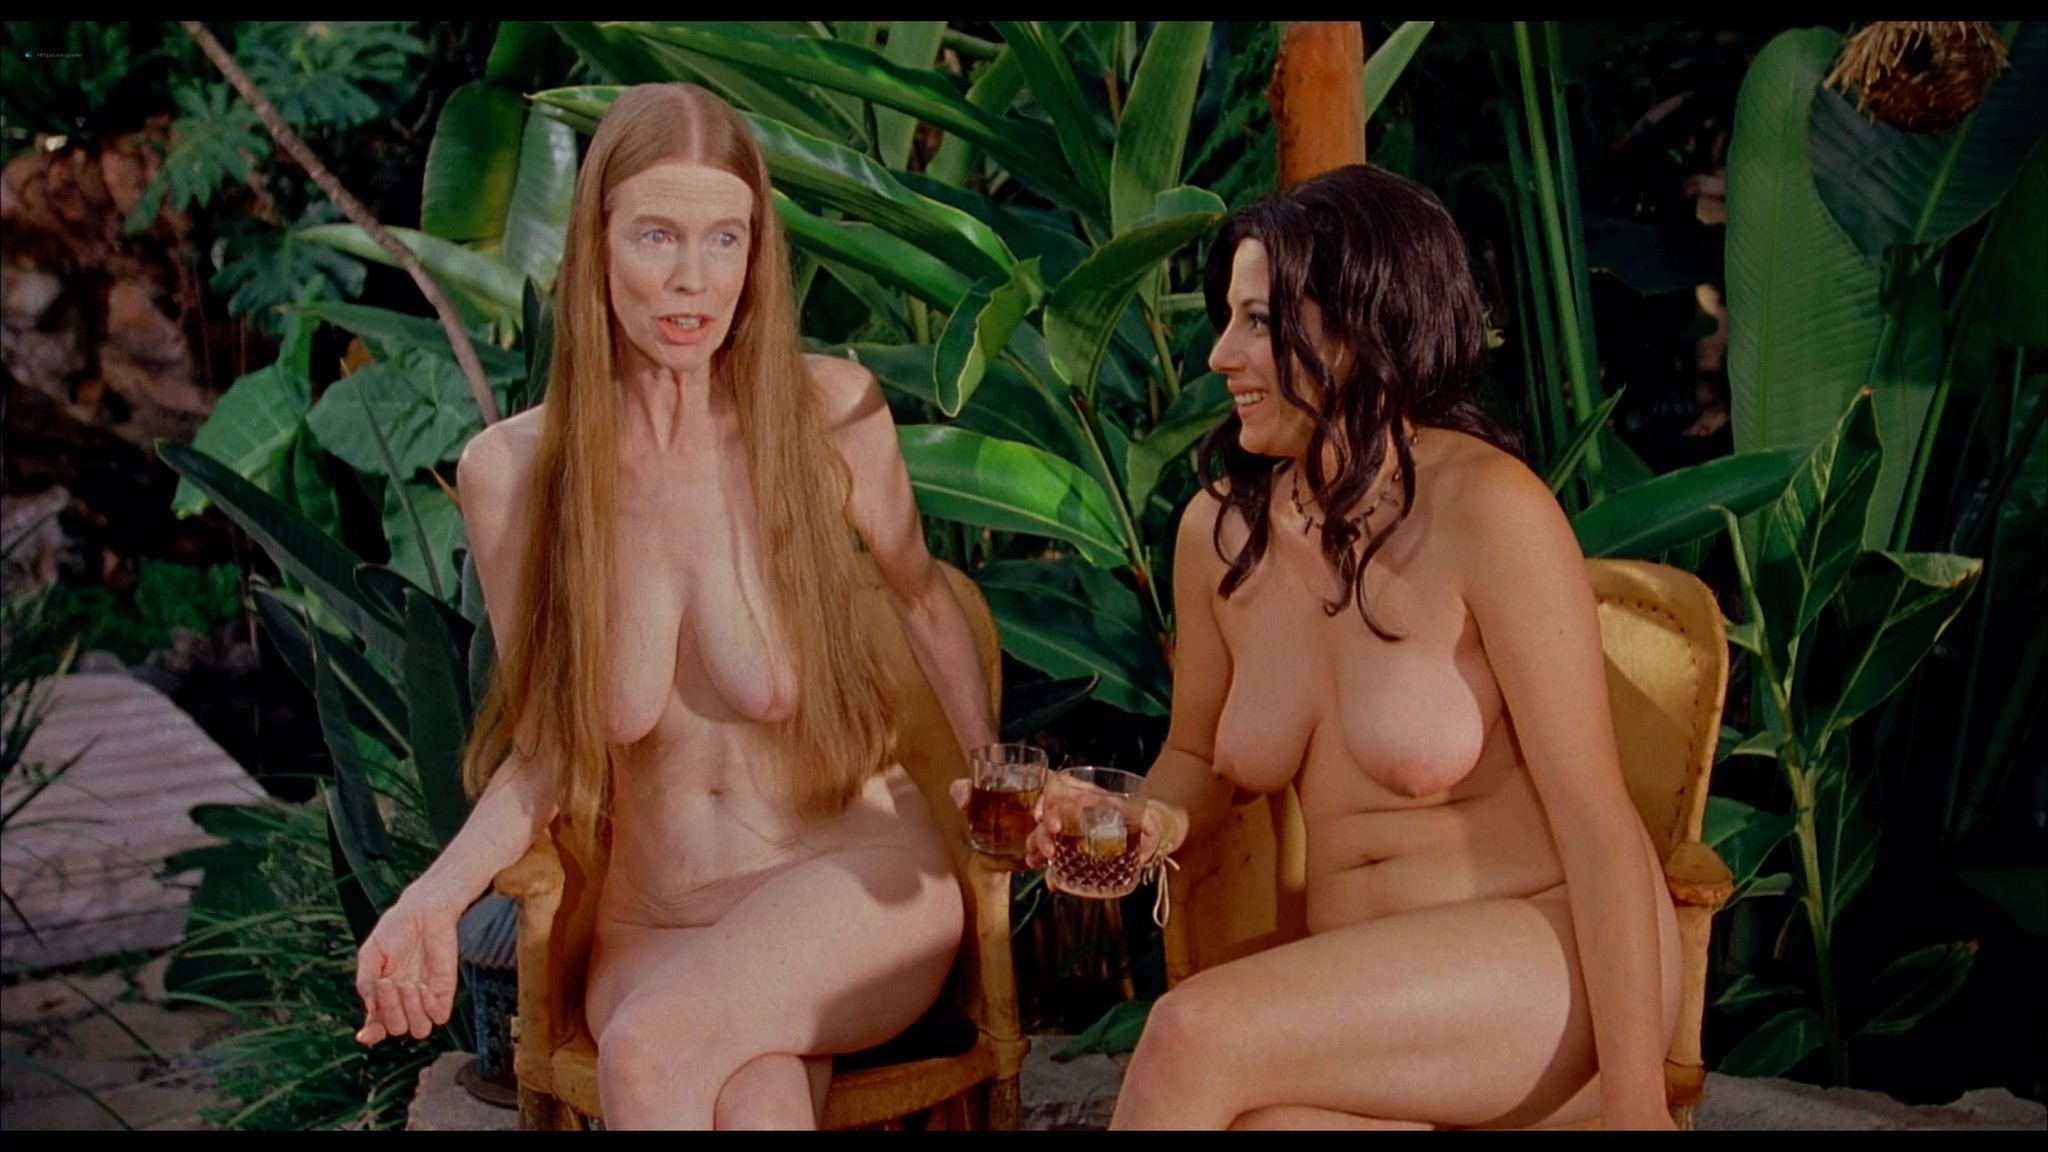 Anna Biller nude bush and sex Bridget Brno and others nude full frontal Viva 2007 1080p BluRay REMUX 8